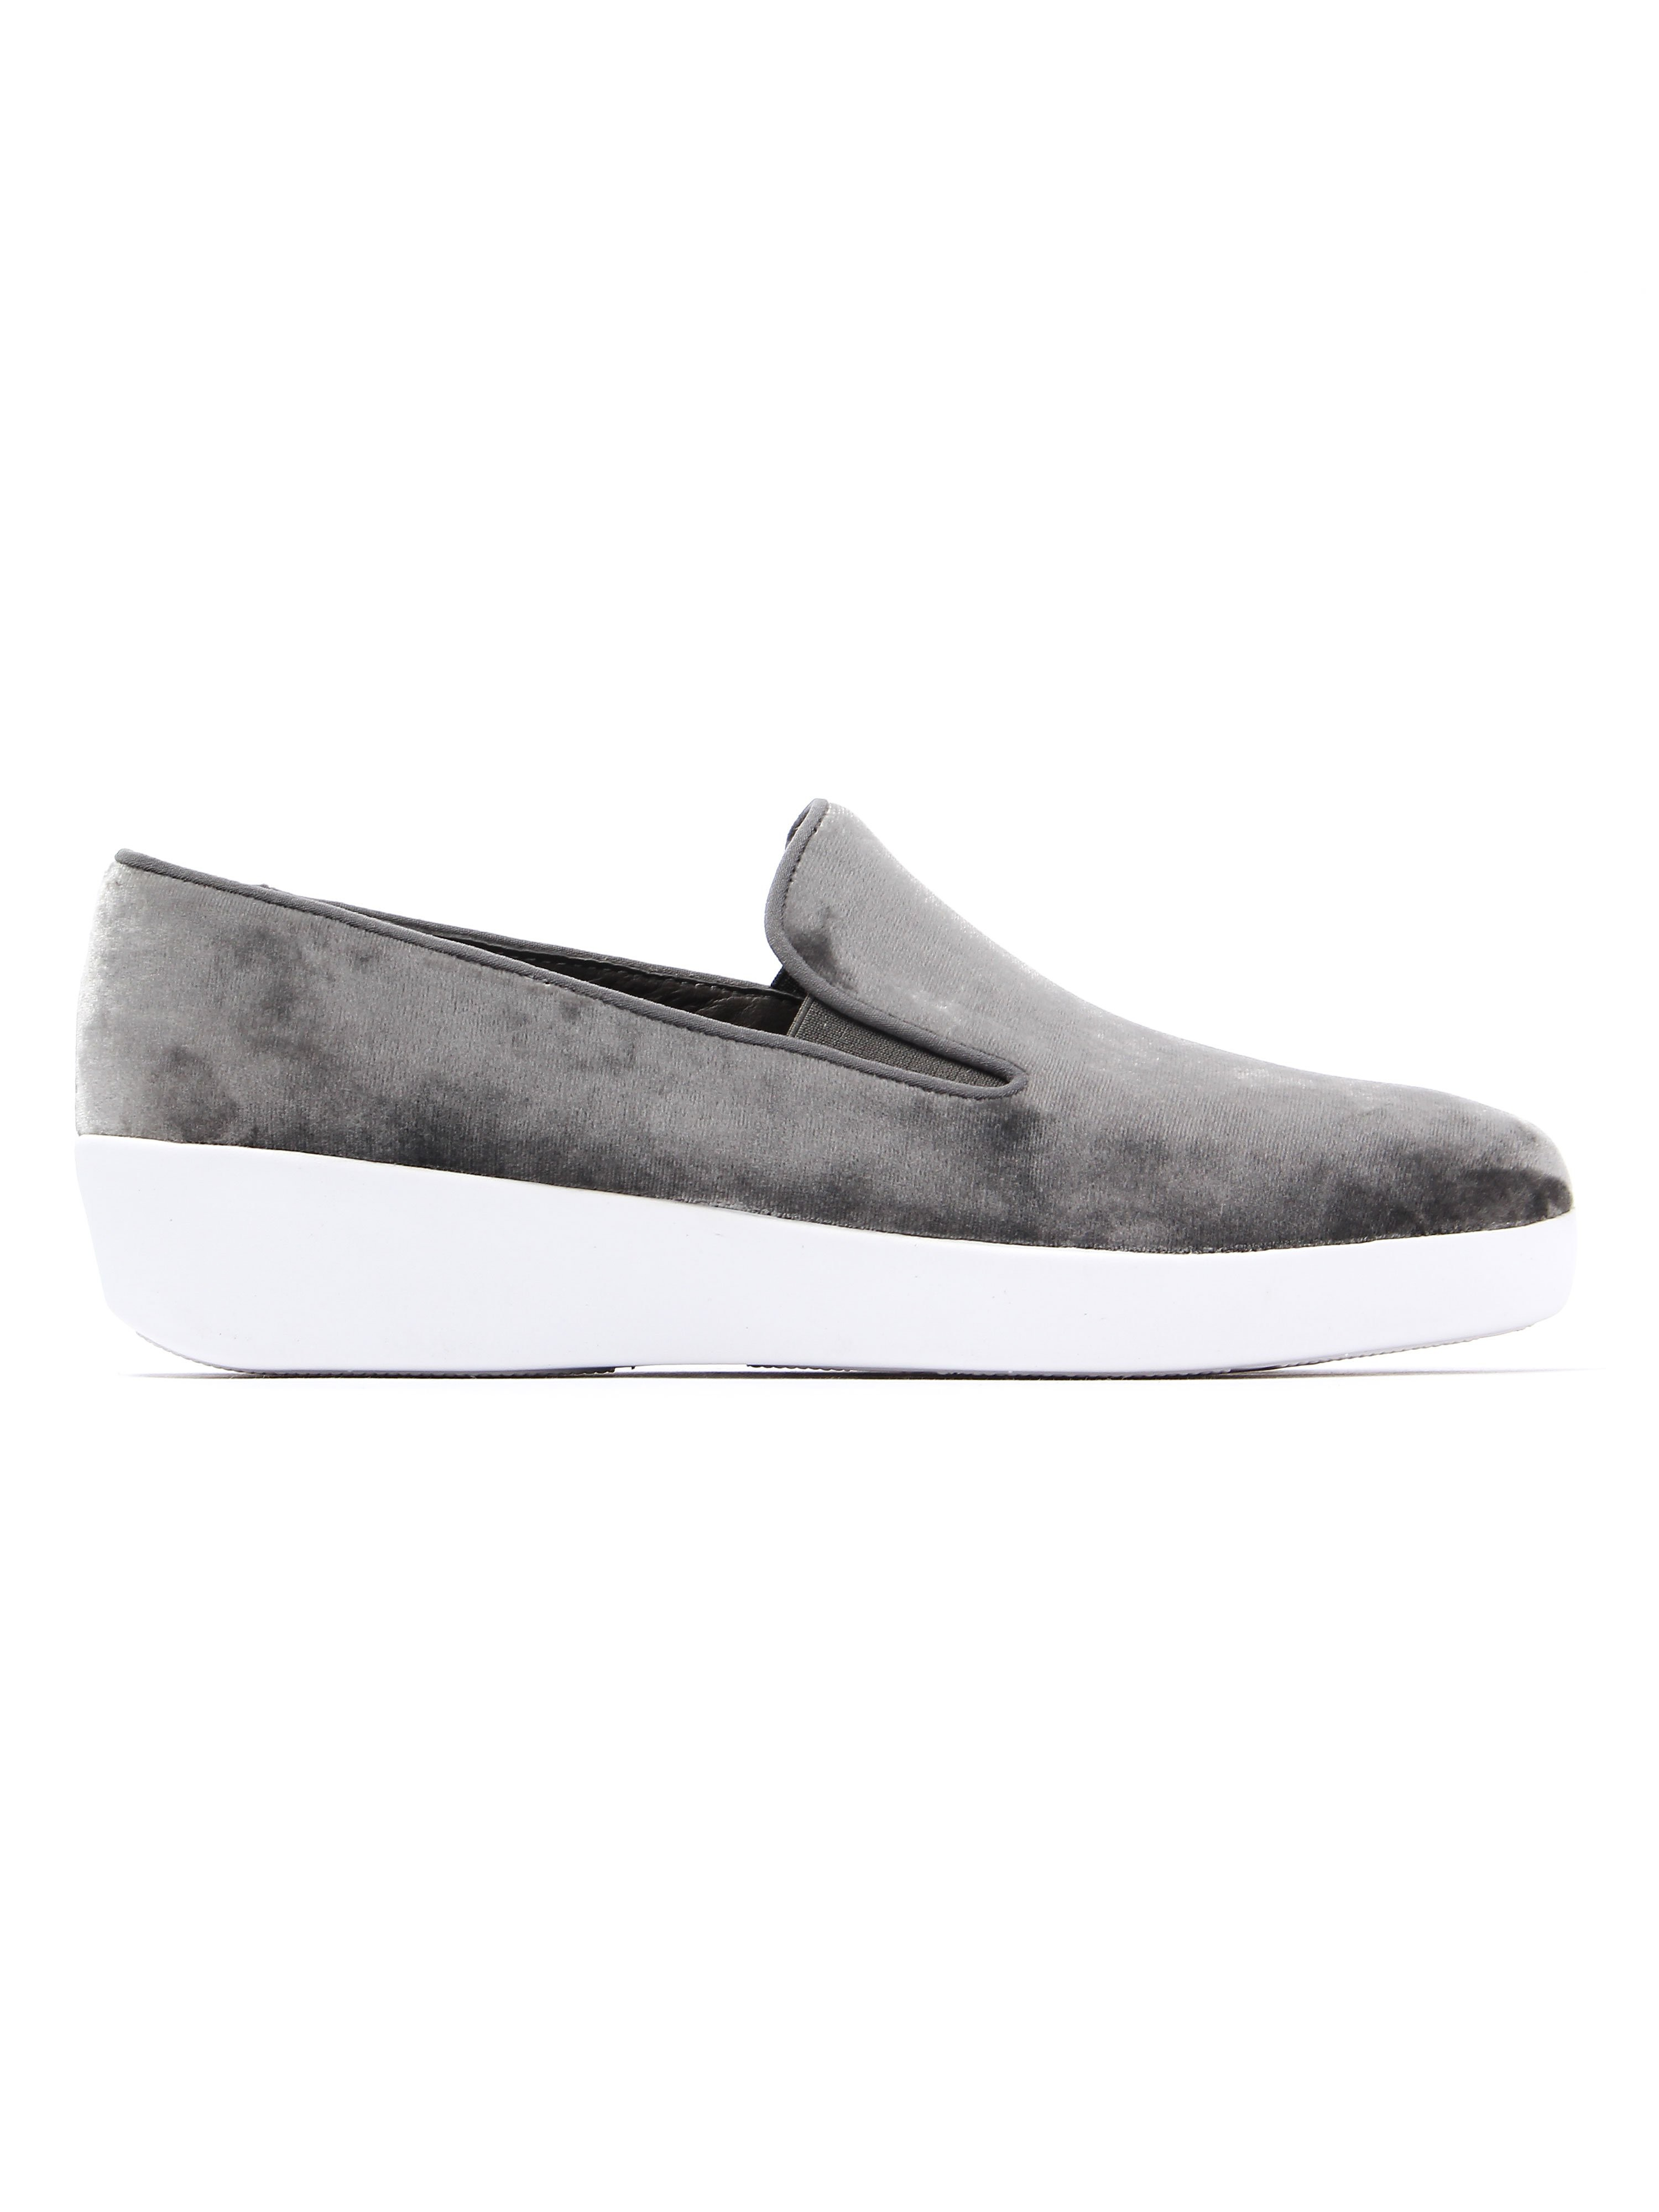 FitFlop Women's Superskate Loafers - Silver Velvet